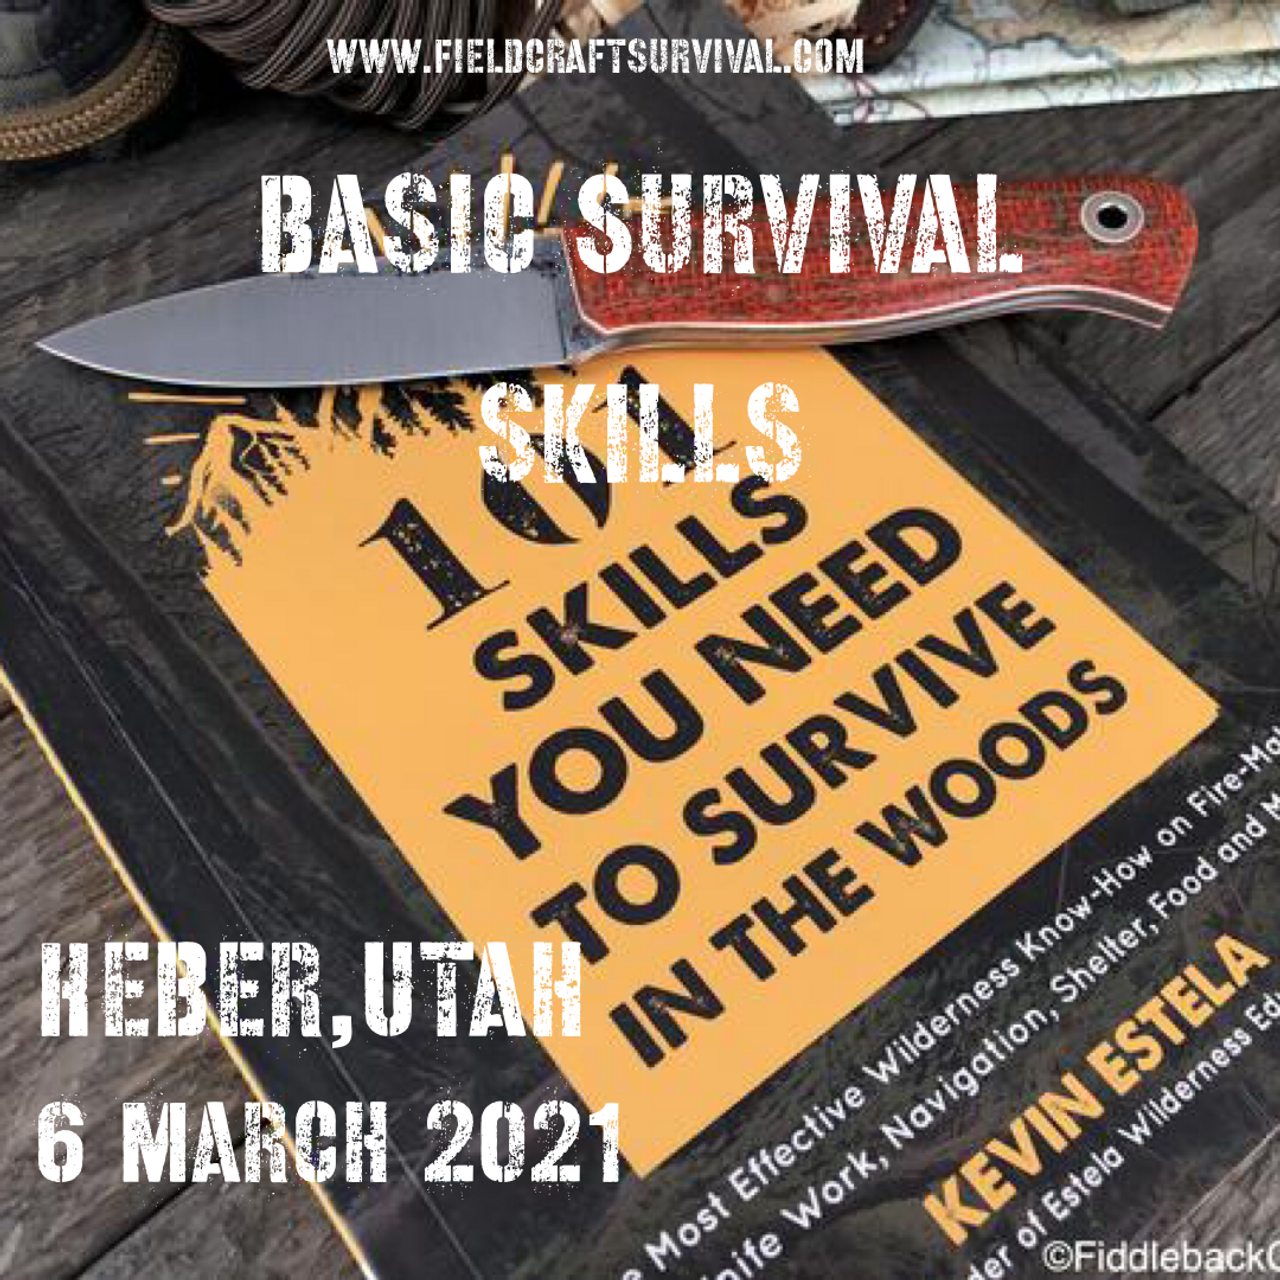 Basic Survival Skills Class 6 March 2021 (Heber, Utah)